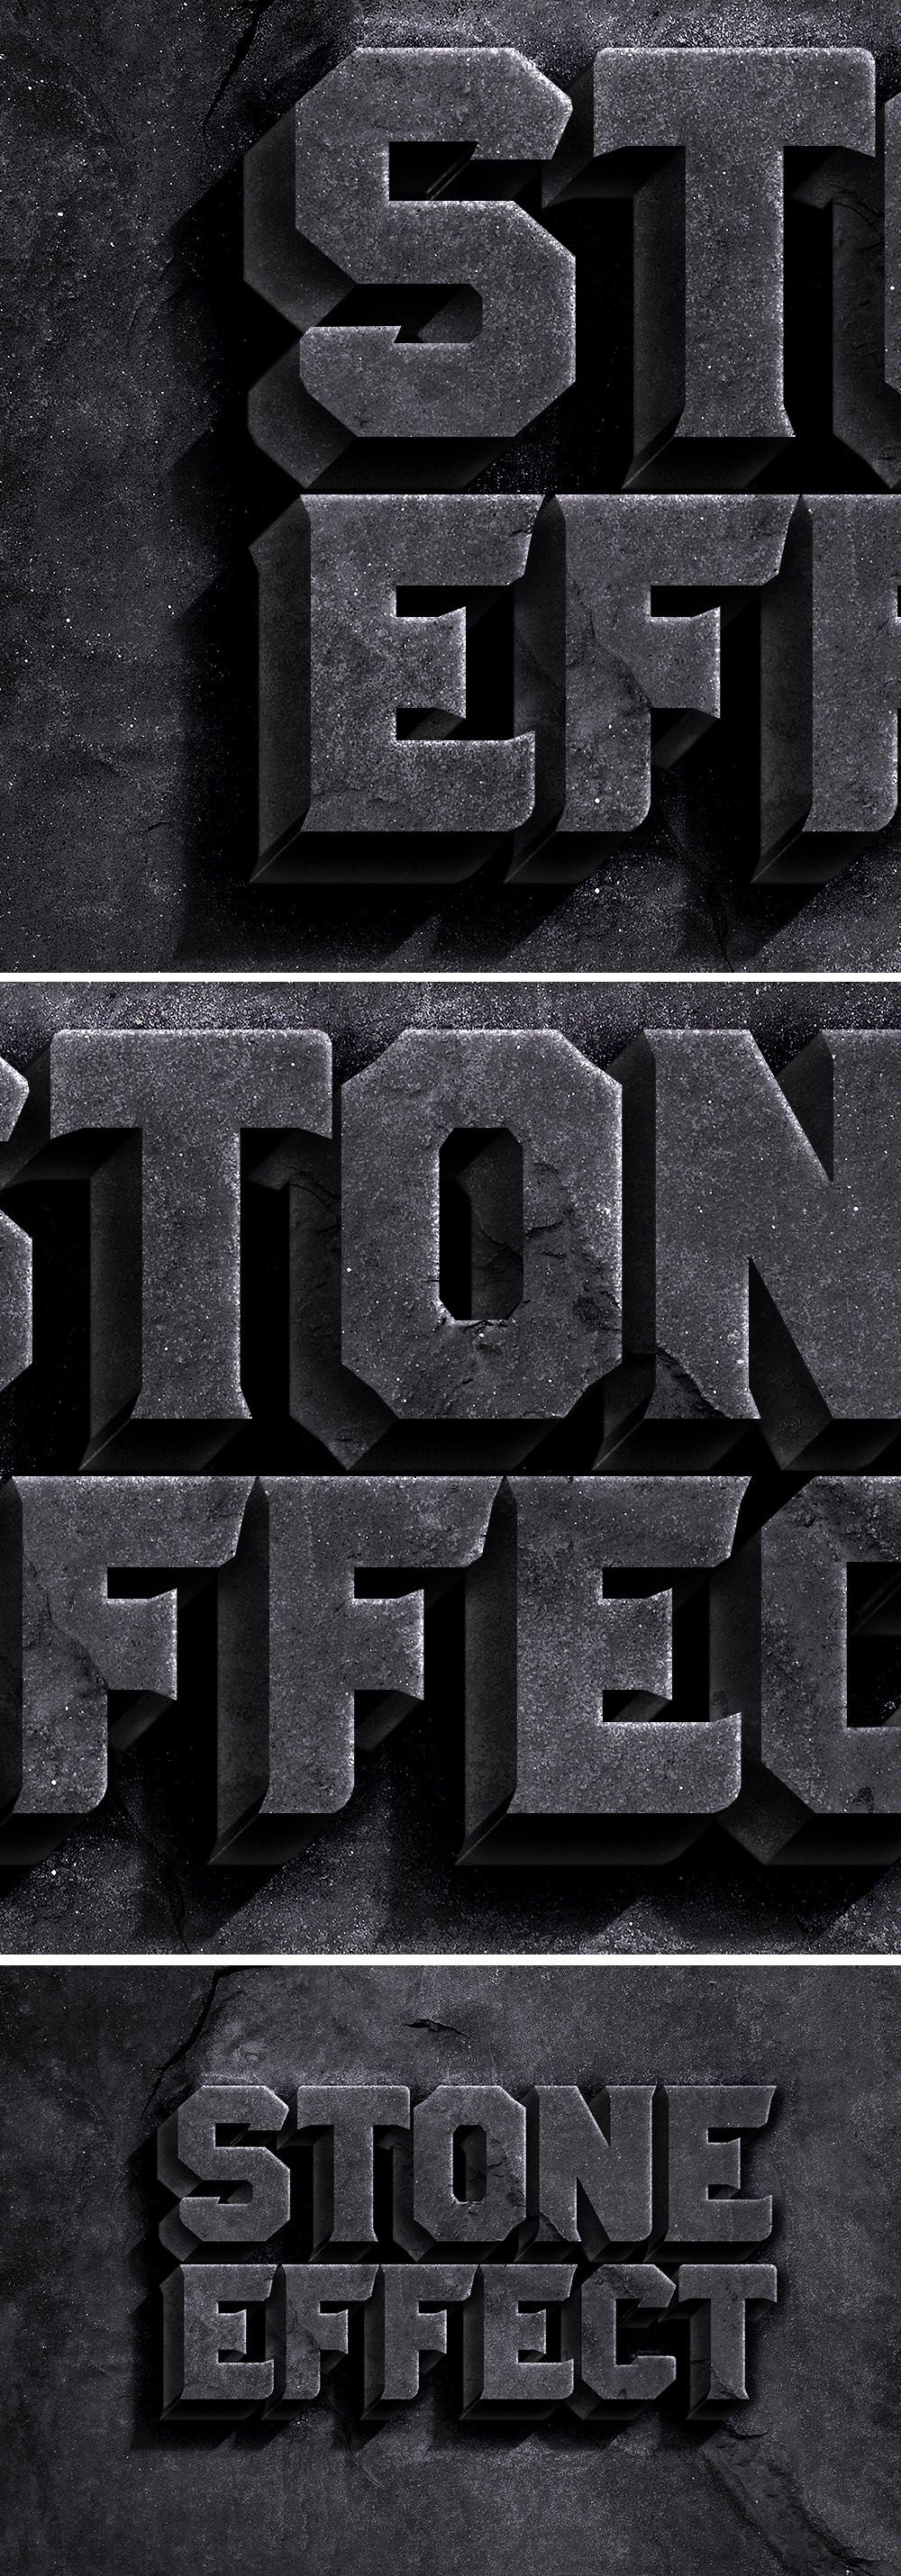 Mysterious poster design with 3d text - Free Rock Text Effect Psd 63 1 Mb Free Psd Photoshop